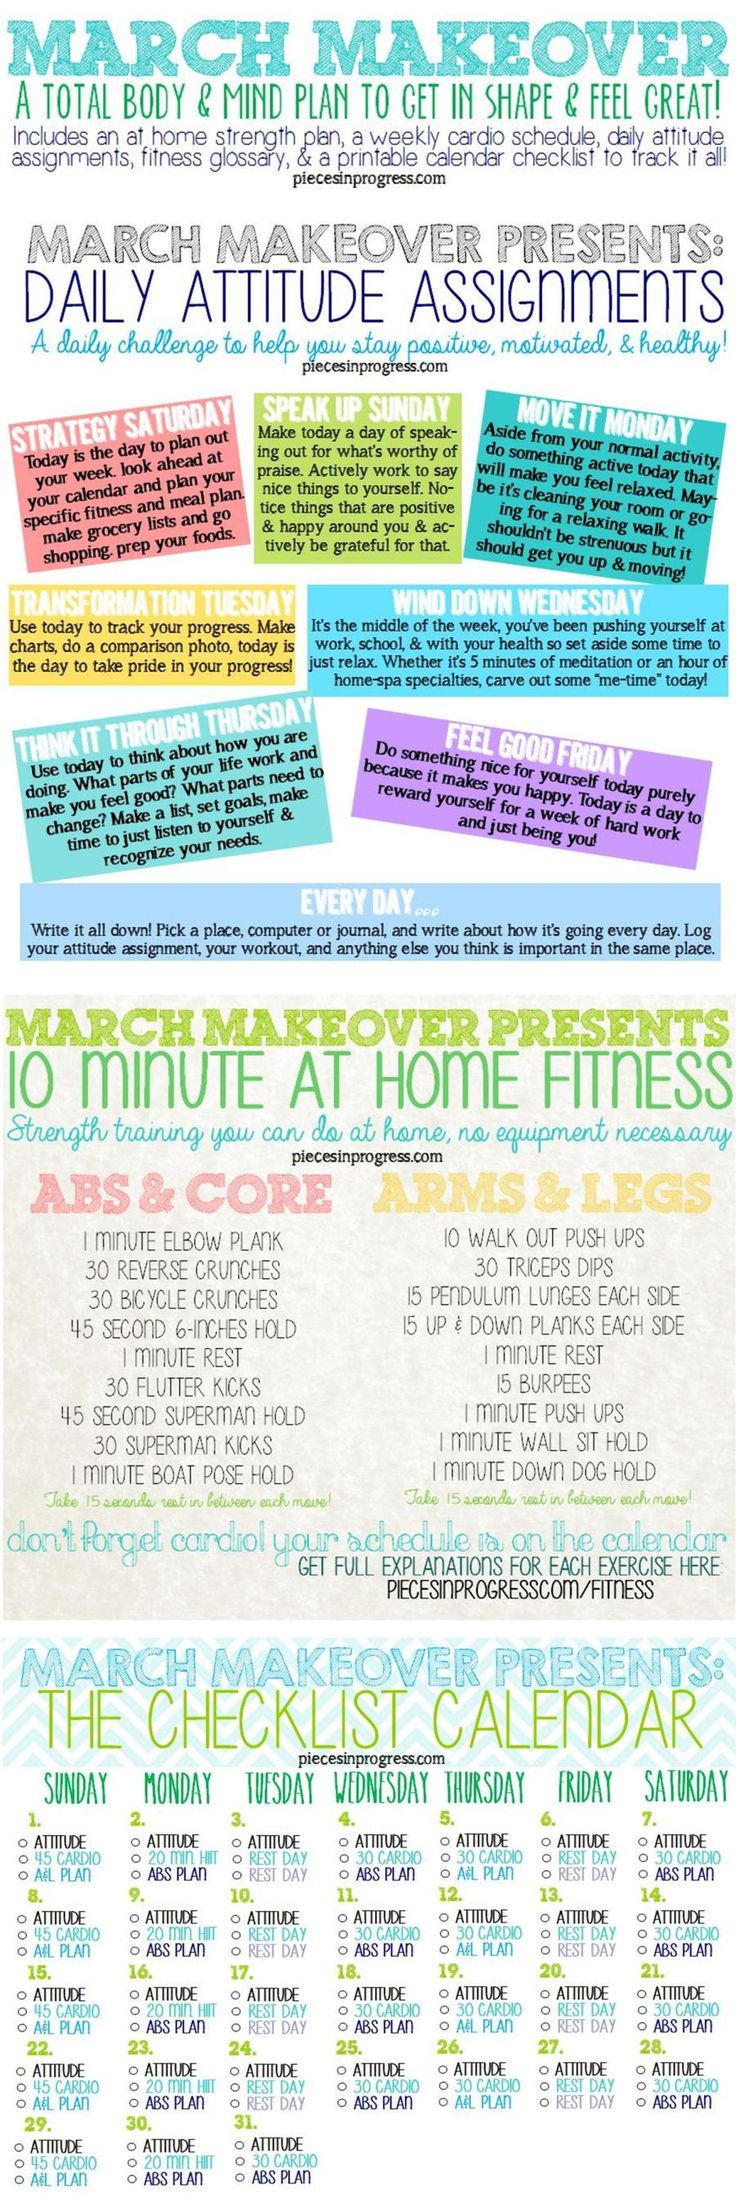 March Makeover Total Wellness Plan #fitness #healthyliving #workouts